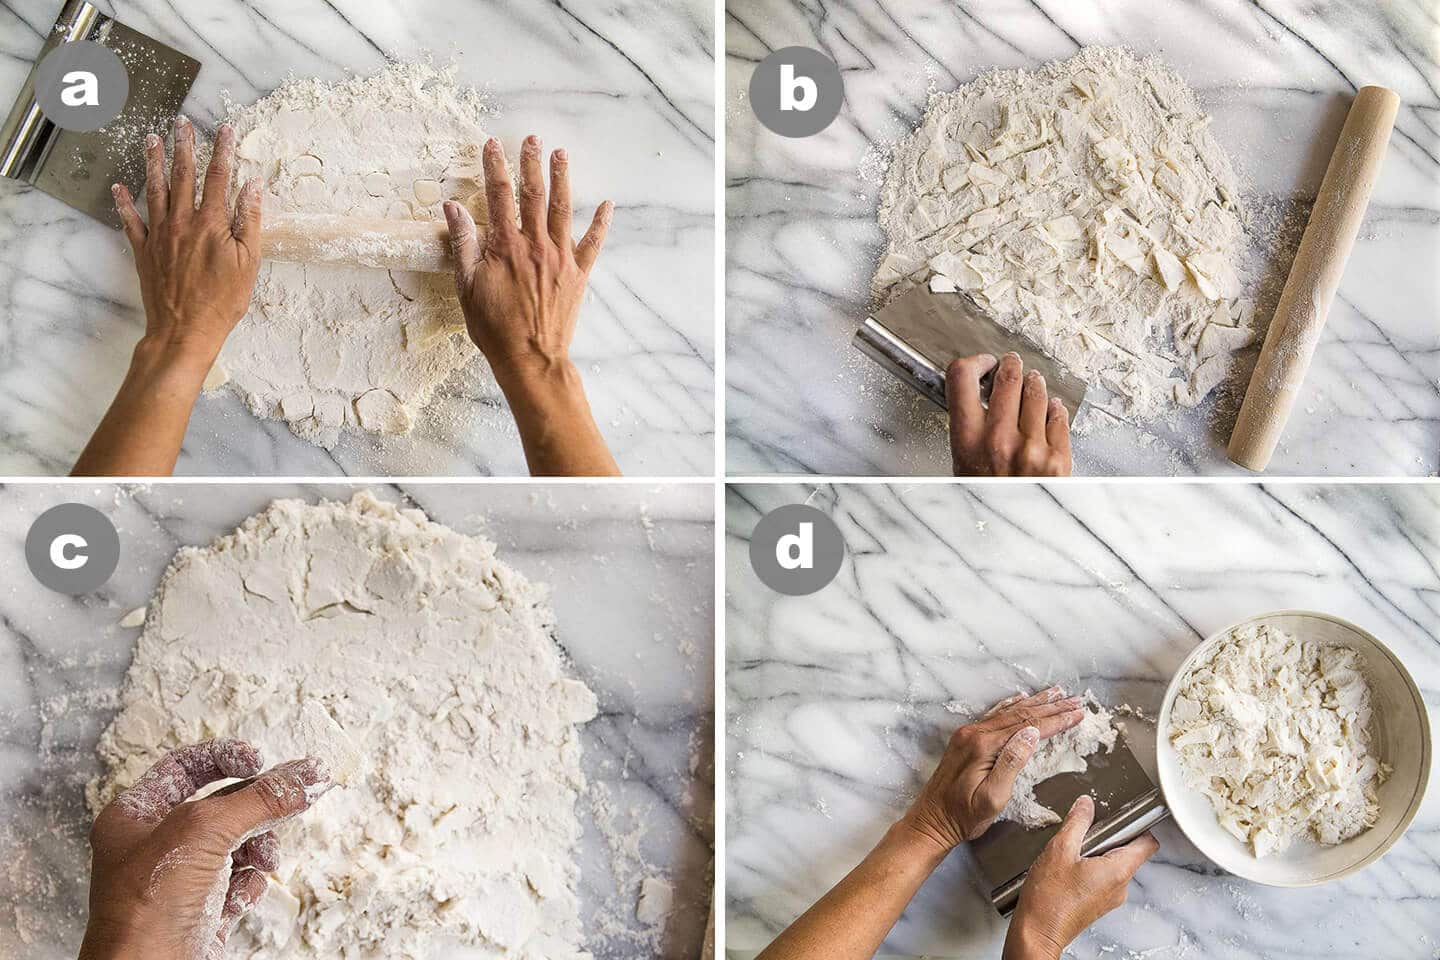 Four photos showing how to make pie crust with a rolling pin.